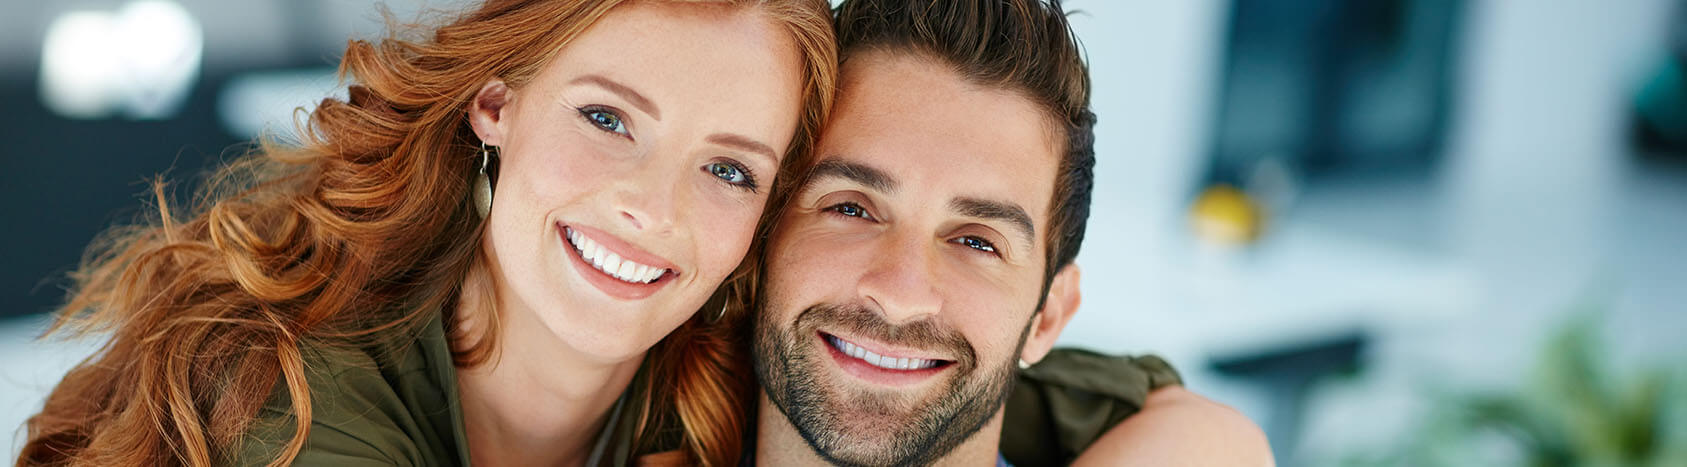 Woman with arm around man smiling